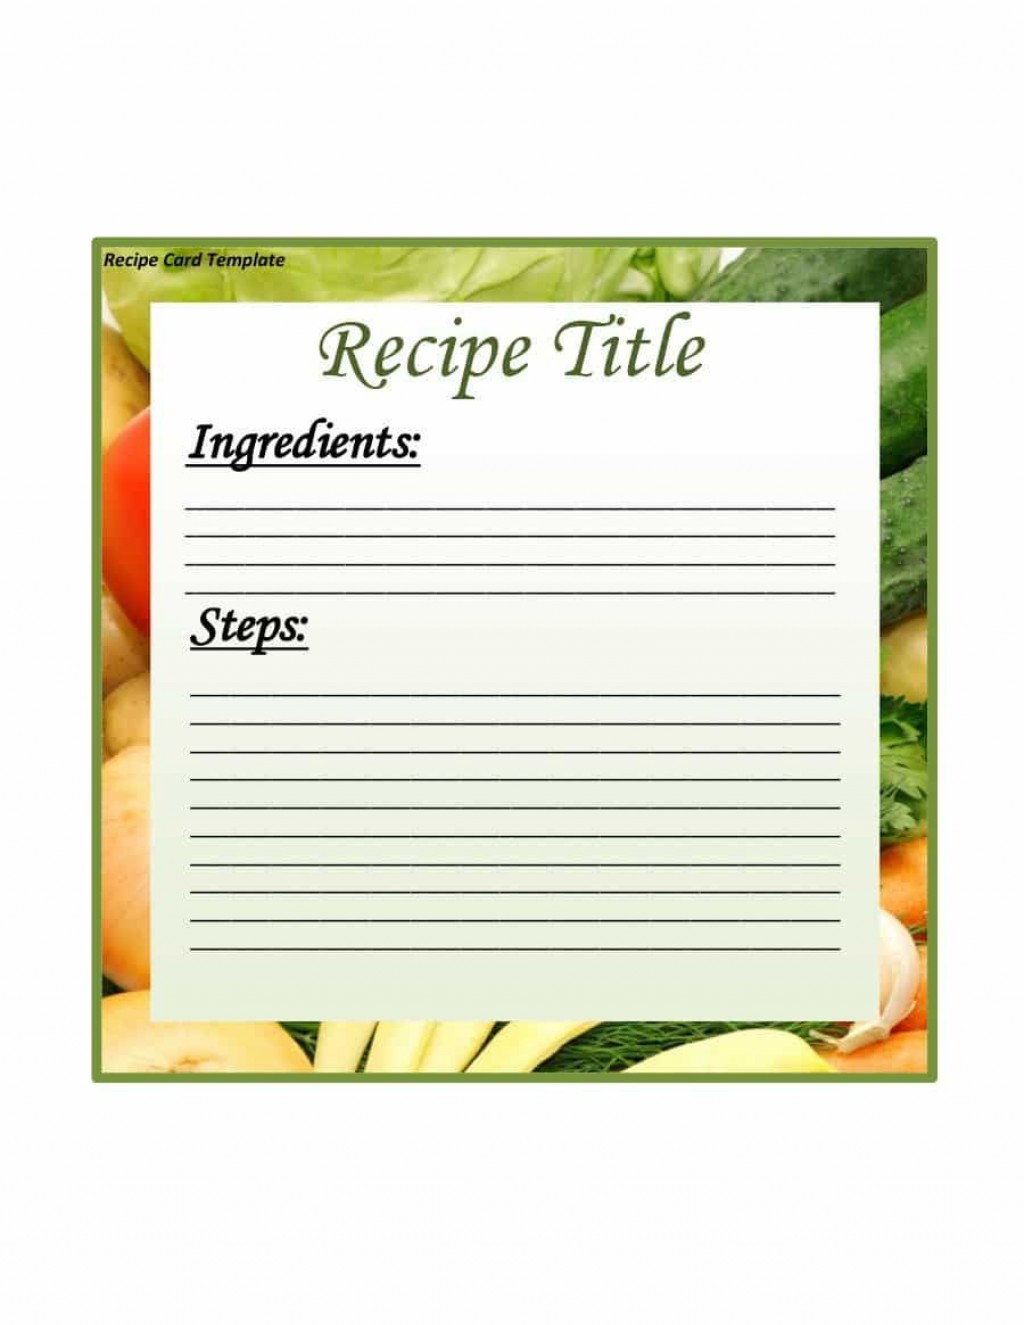 002 Breathtaking Fillable Recipe Card Template Highest Clarity  For Word FreeLarge